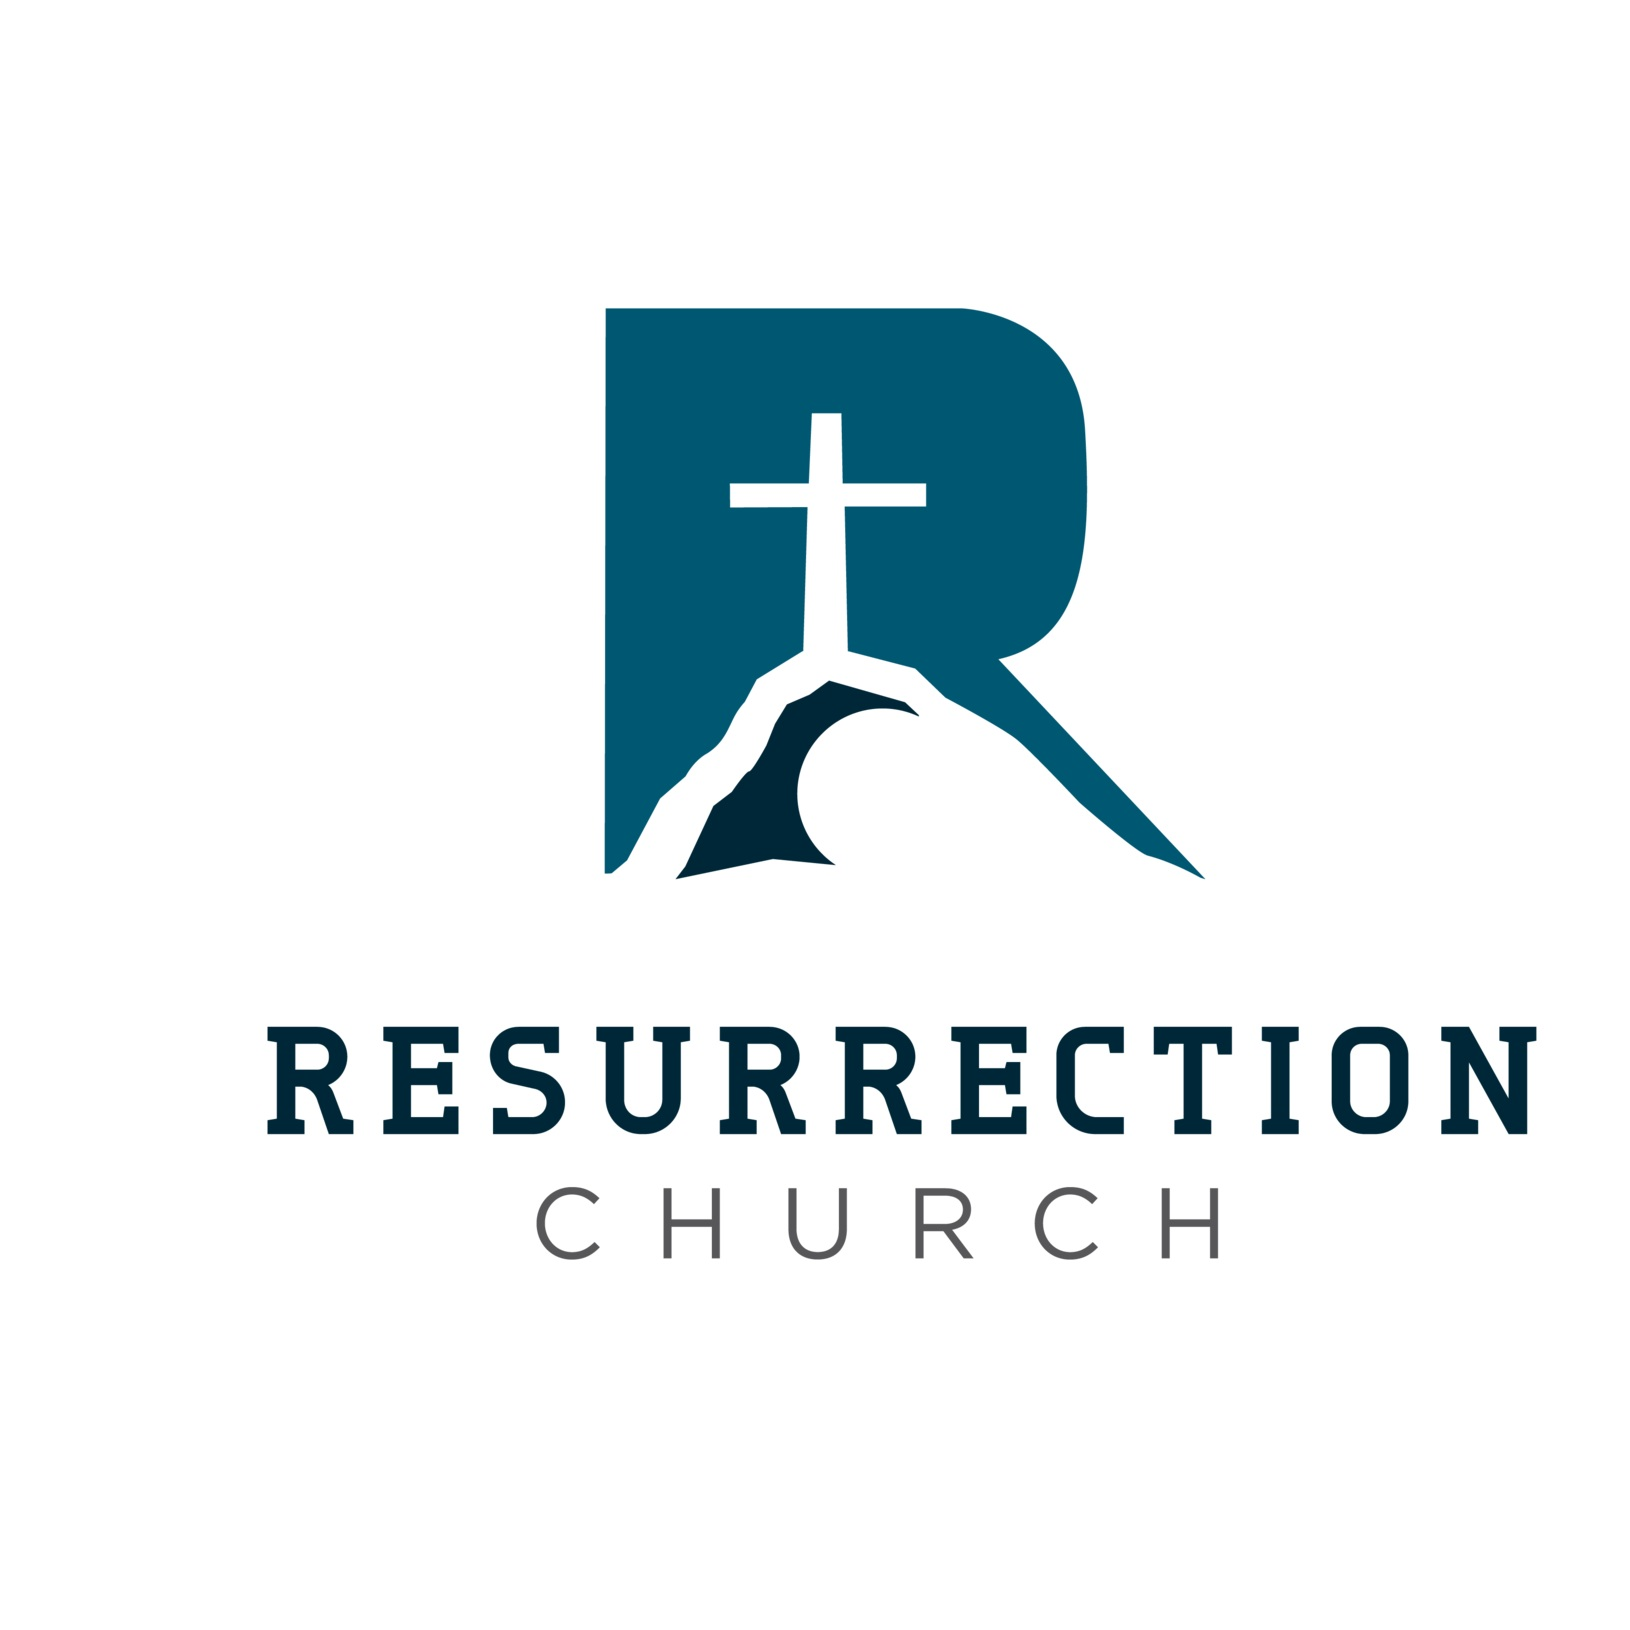 ResurrectionChurch_Final_FullColor-01.jpg